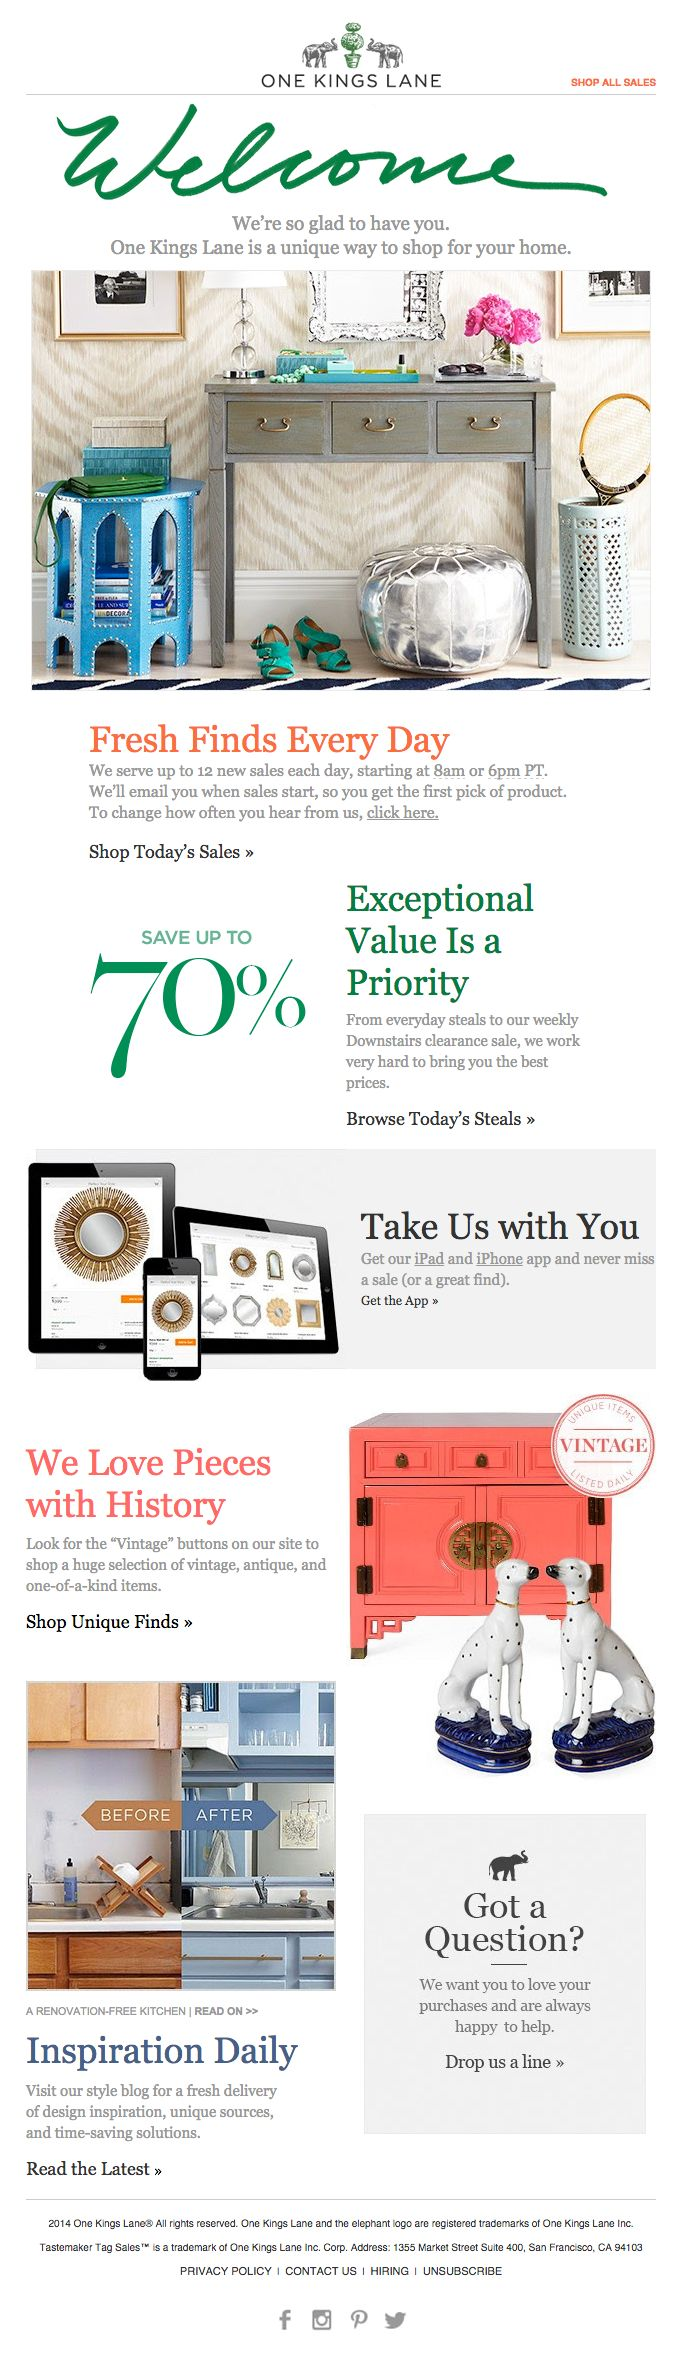 118 best Welcome emails images on Pinterest | Email design, Email ...